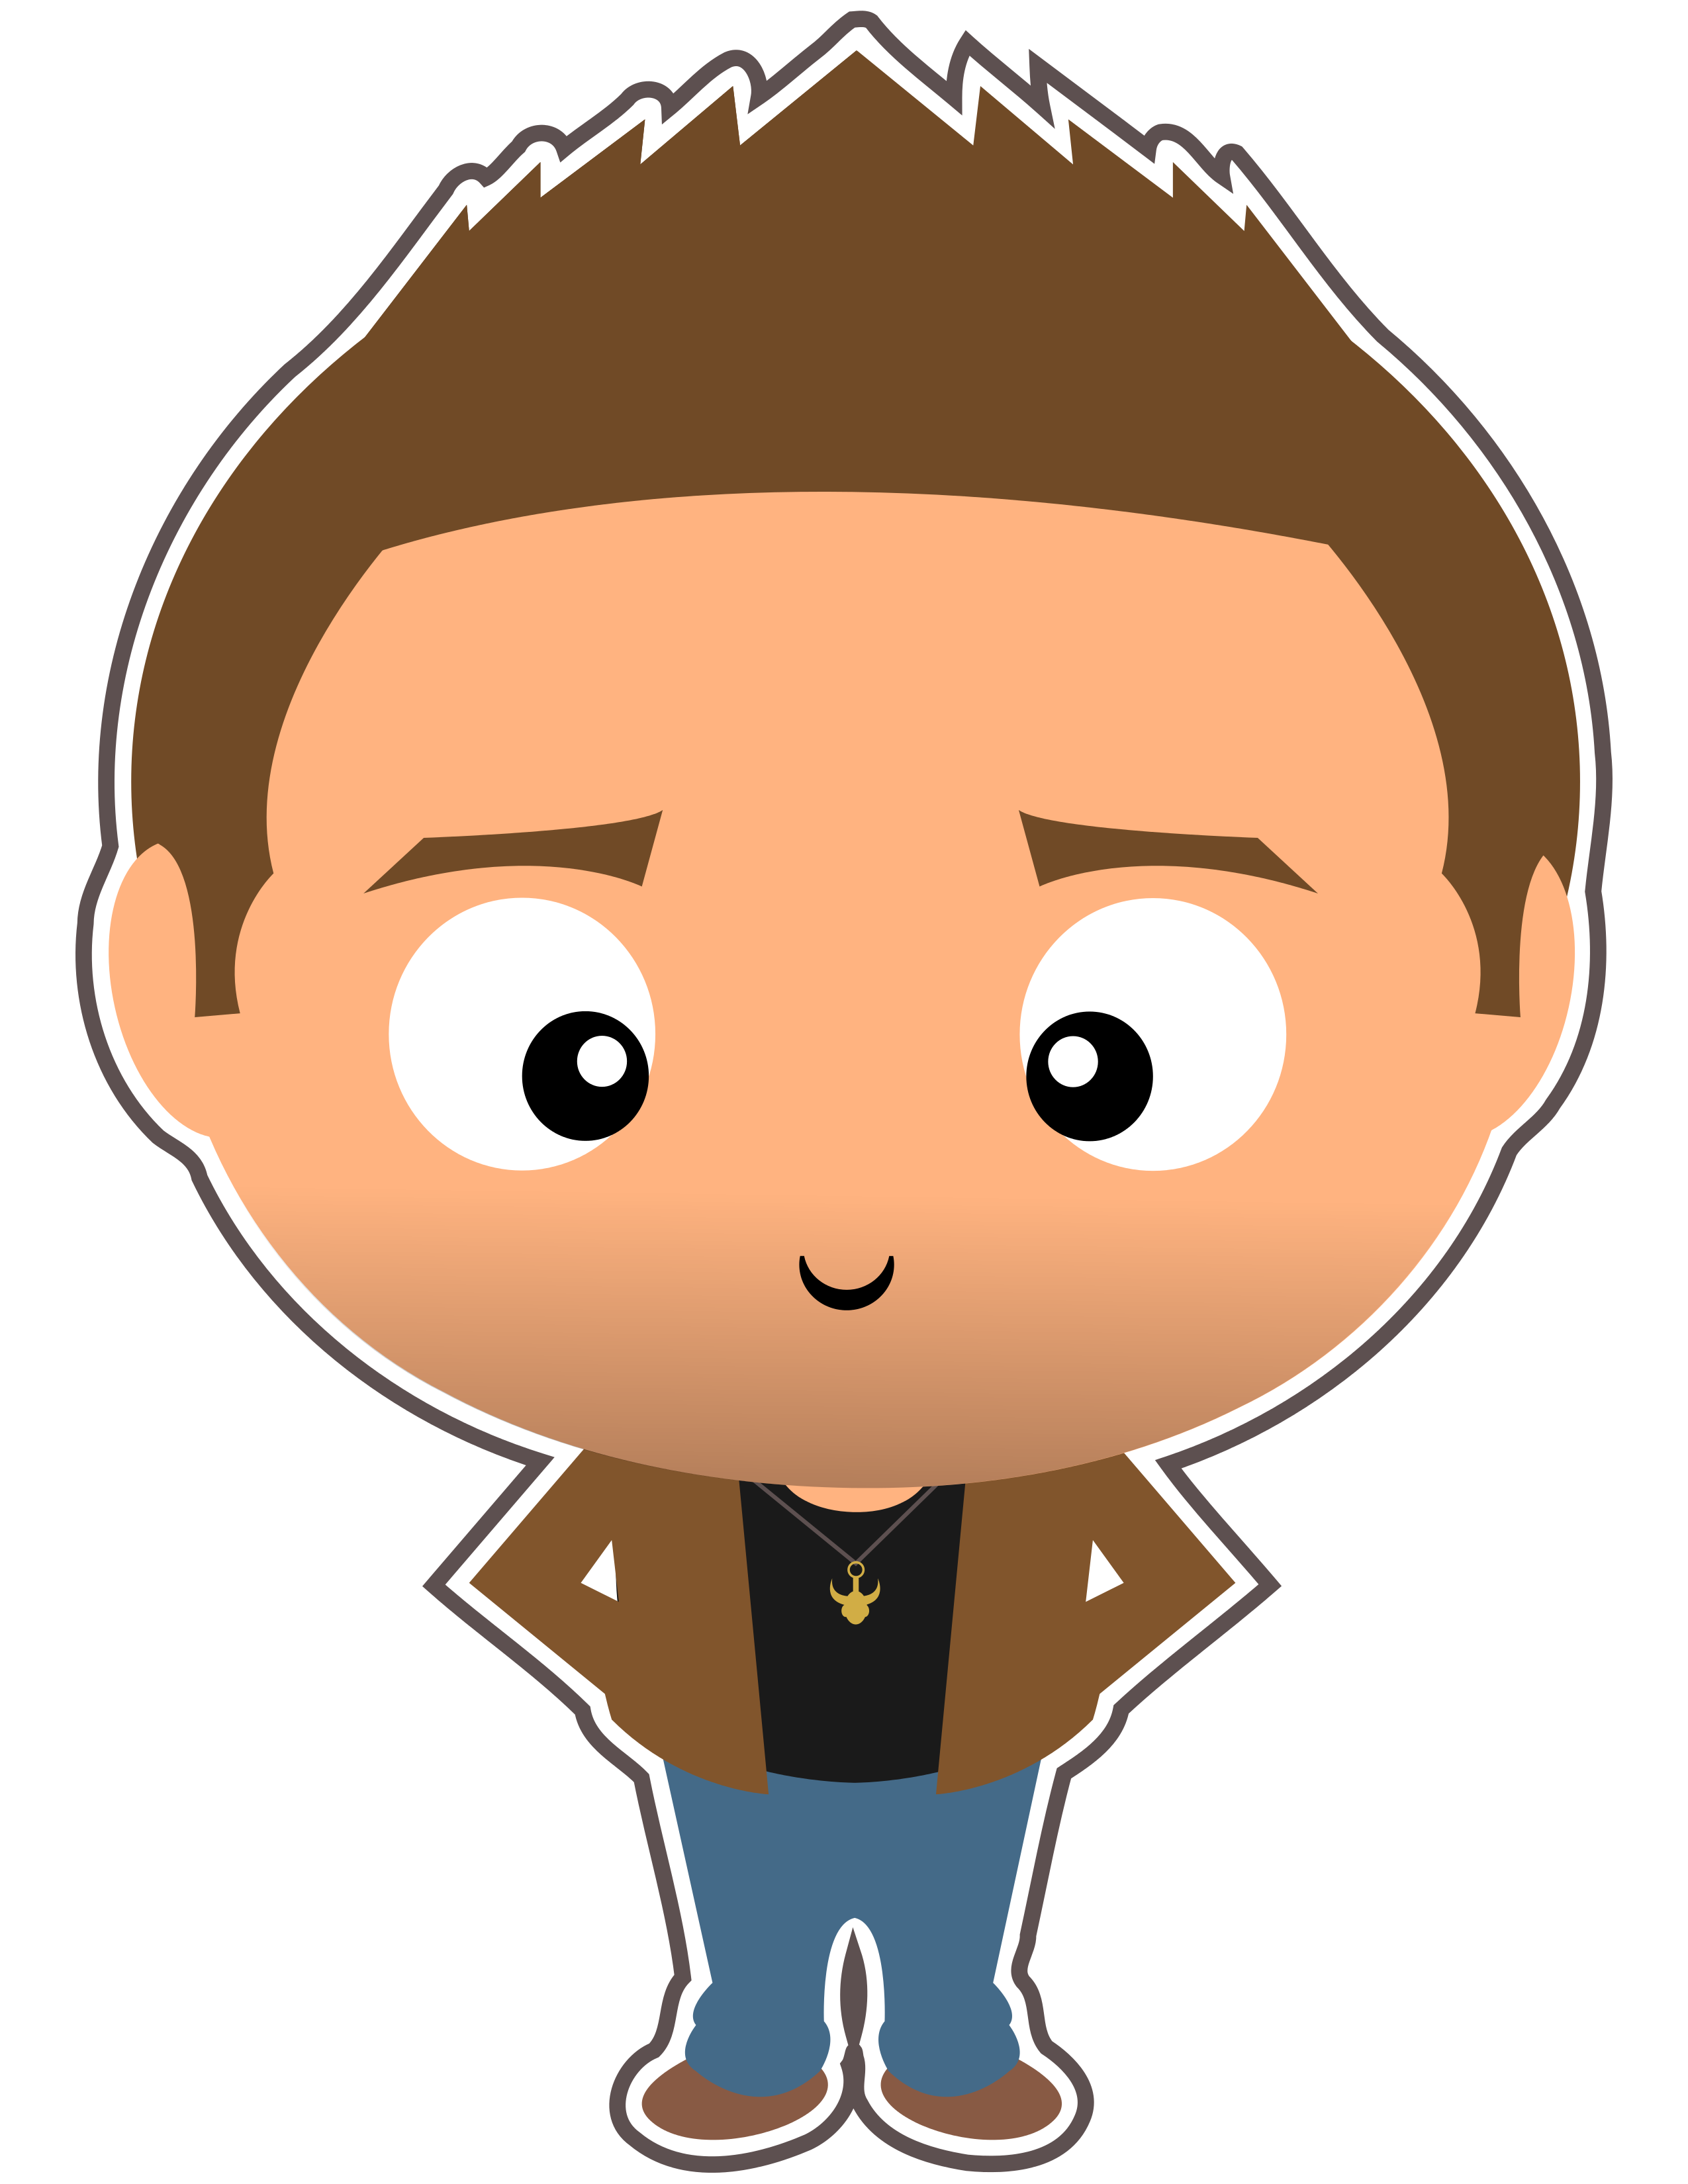 Sam winchester clipart banner royalty free stock Supernatural Clipart - Dean Winchester - Cute Funko Pop ... banner royalty free stock